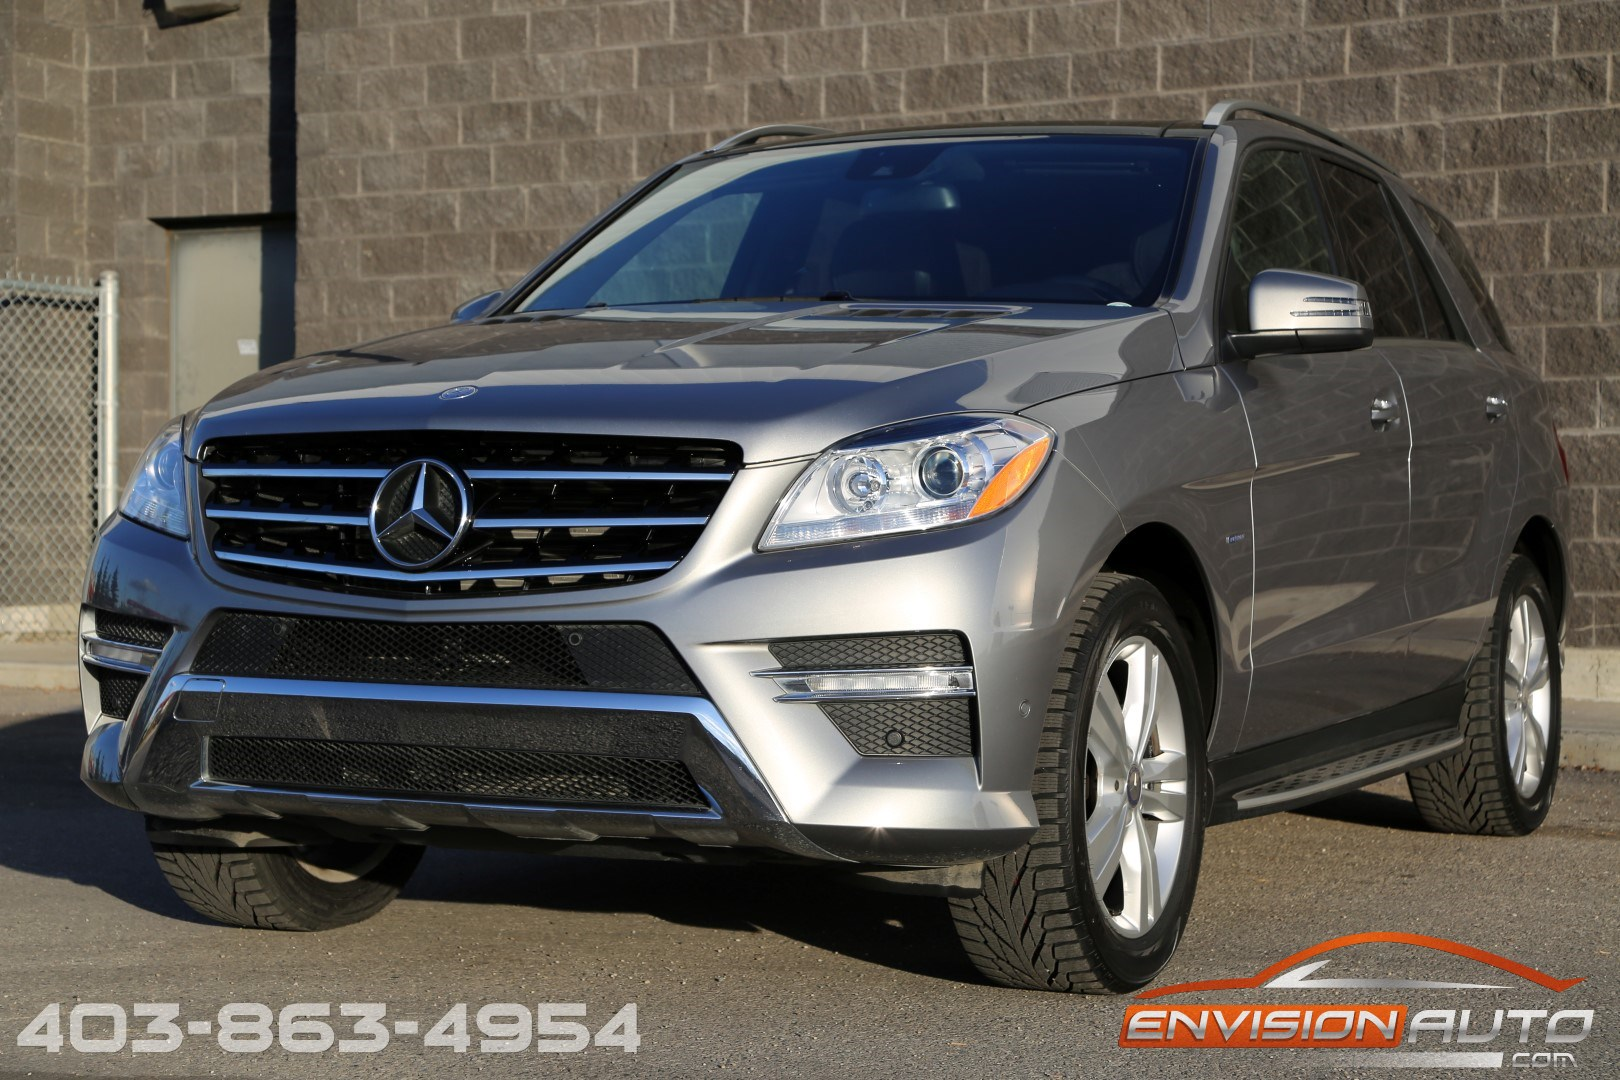 2012 mercedes benz ml350 4matic premium designo envision. Black Bedroom Furniture Sets. Home Design Ideas